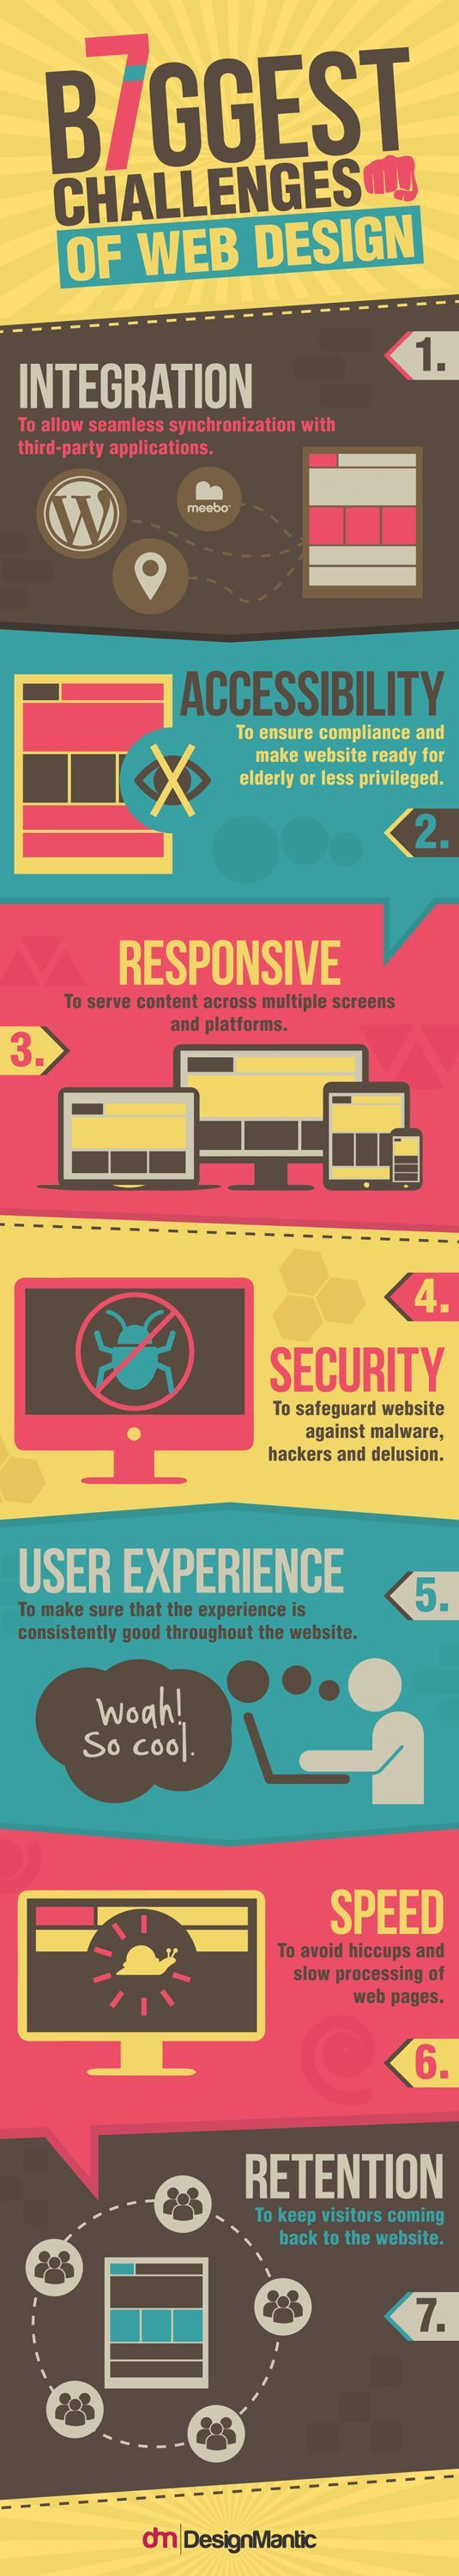 7 biggest challenges of web design  | Infographic | Creative Bloq